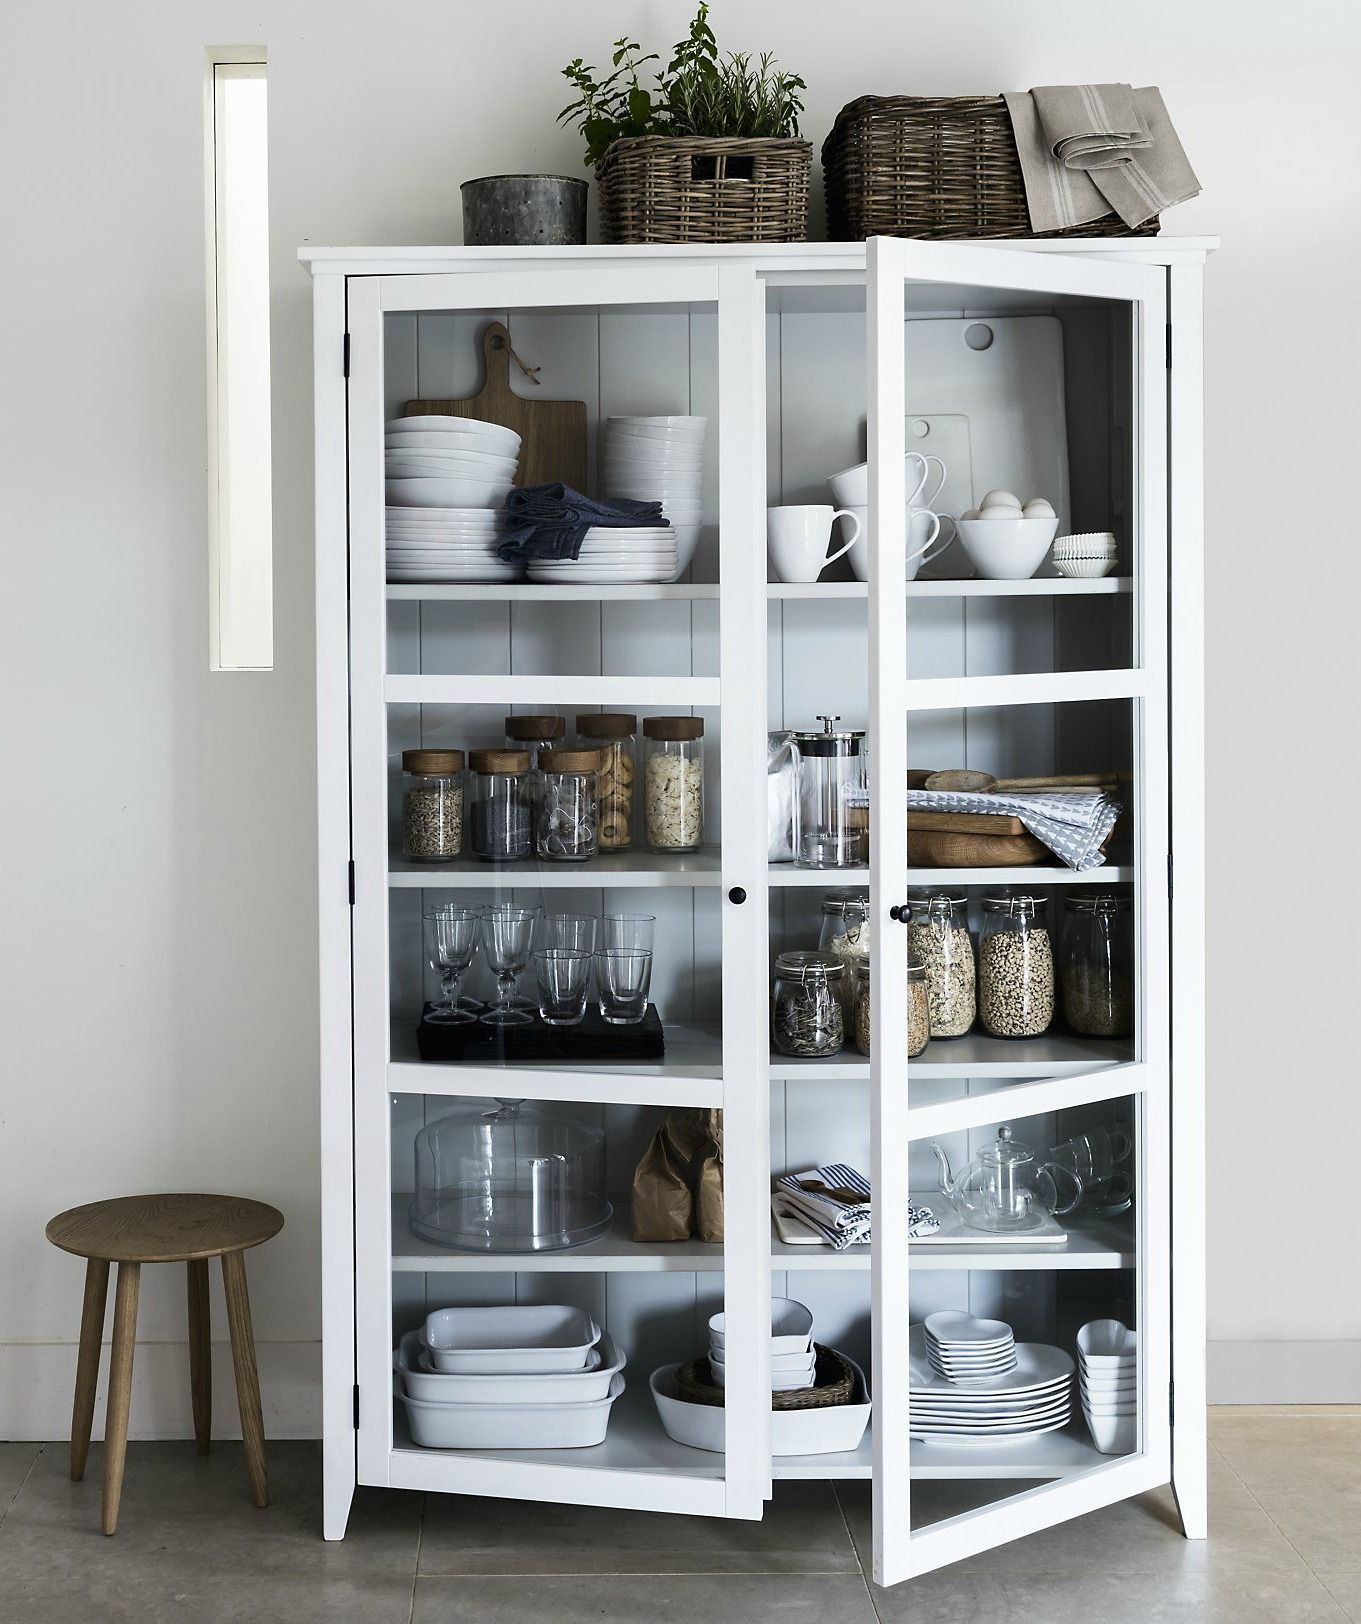 Kat Got The Cream Interiors How To Style Your Kitchen Shelves Glass Cabinets Display Kitchen Display Cabinet Cabinet Furniture